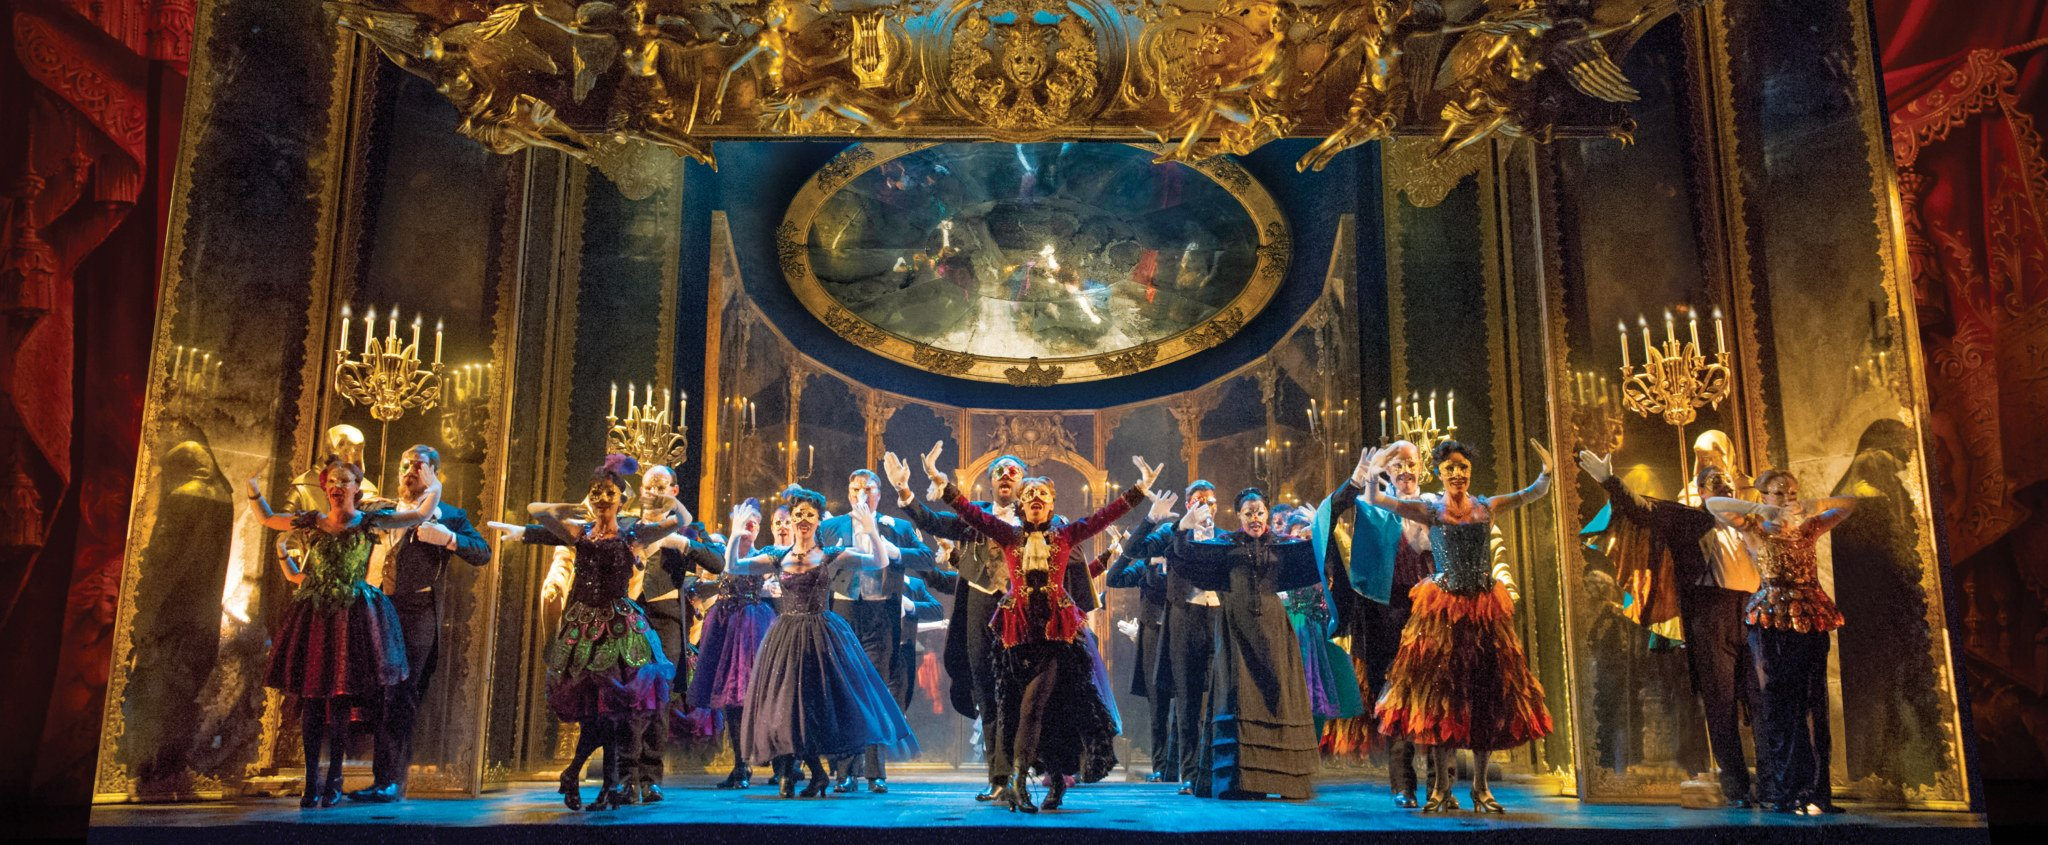 https://www.allthingswithpurpose.com/wp-content/uploads/2018/10/06-the-phantom-of-the-opera-the-company-performs-masquerade-photo-by-alastair-muir.jpg